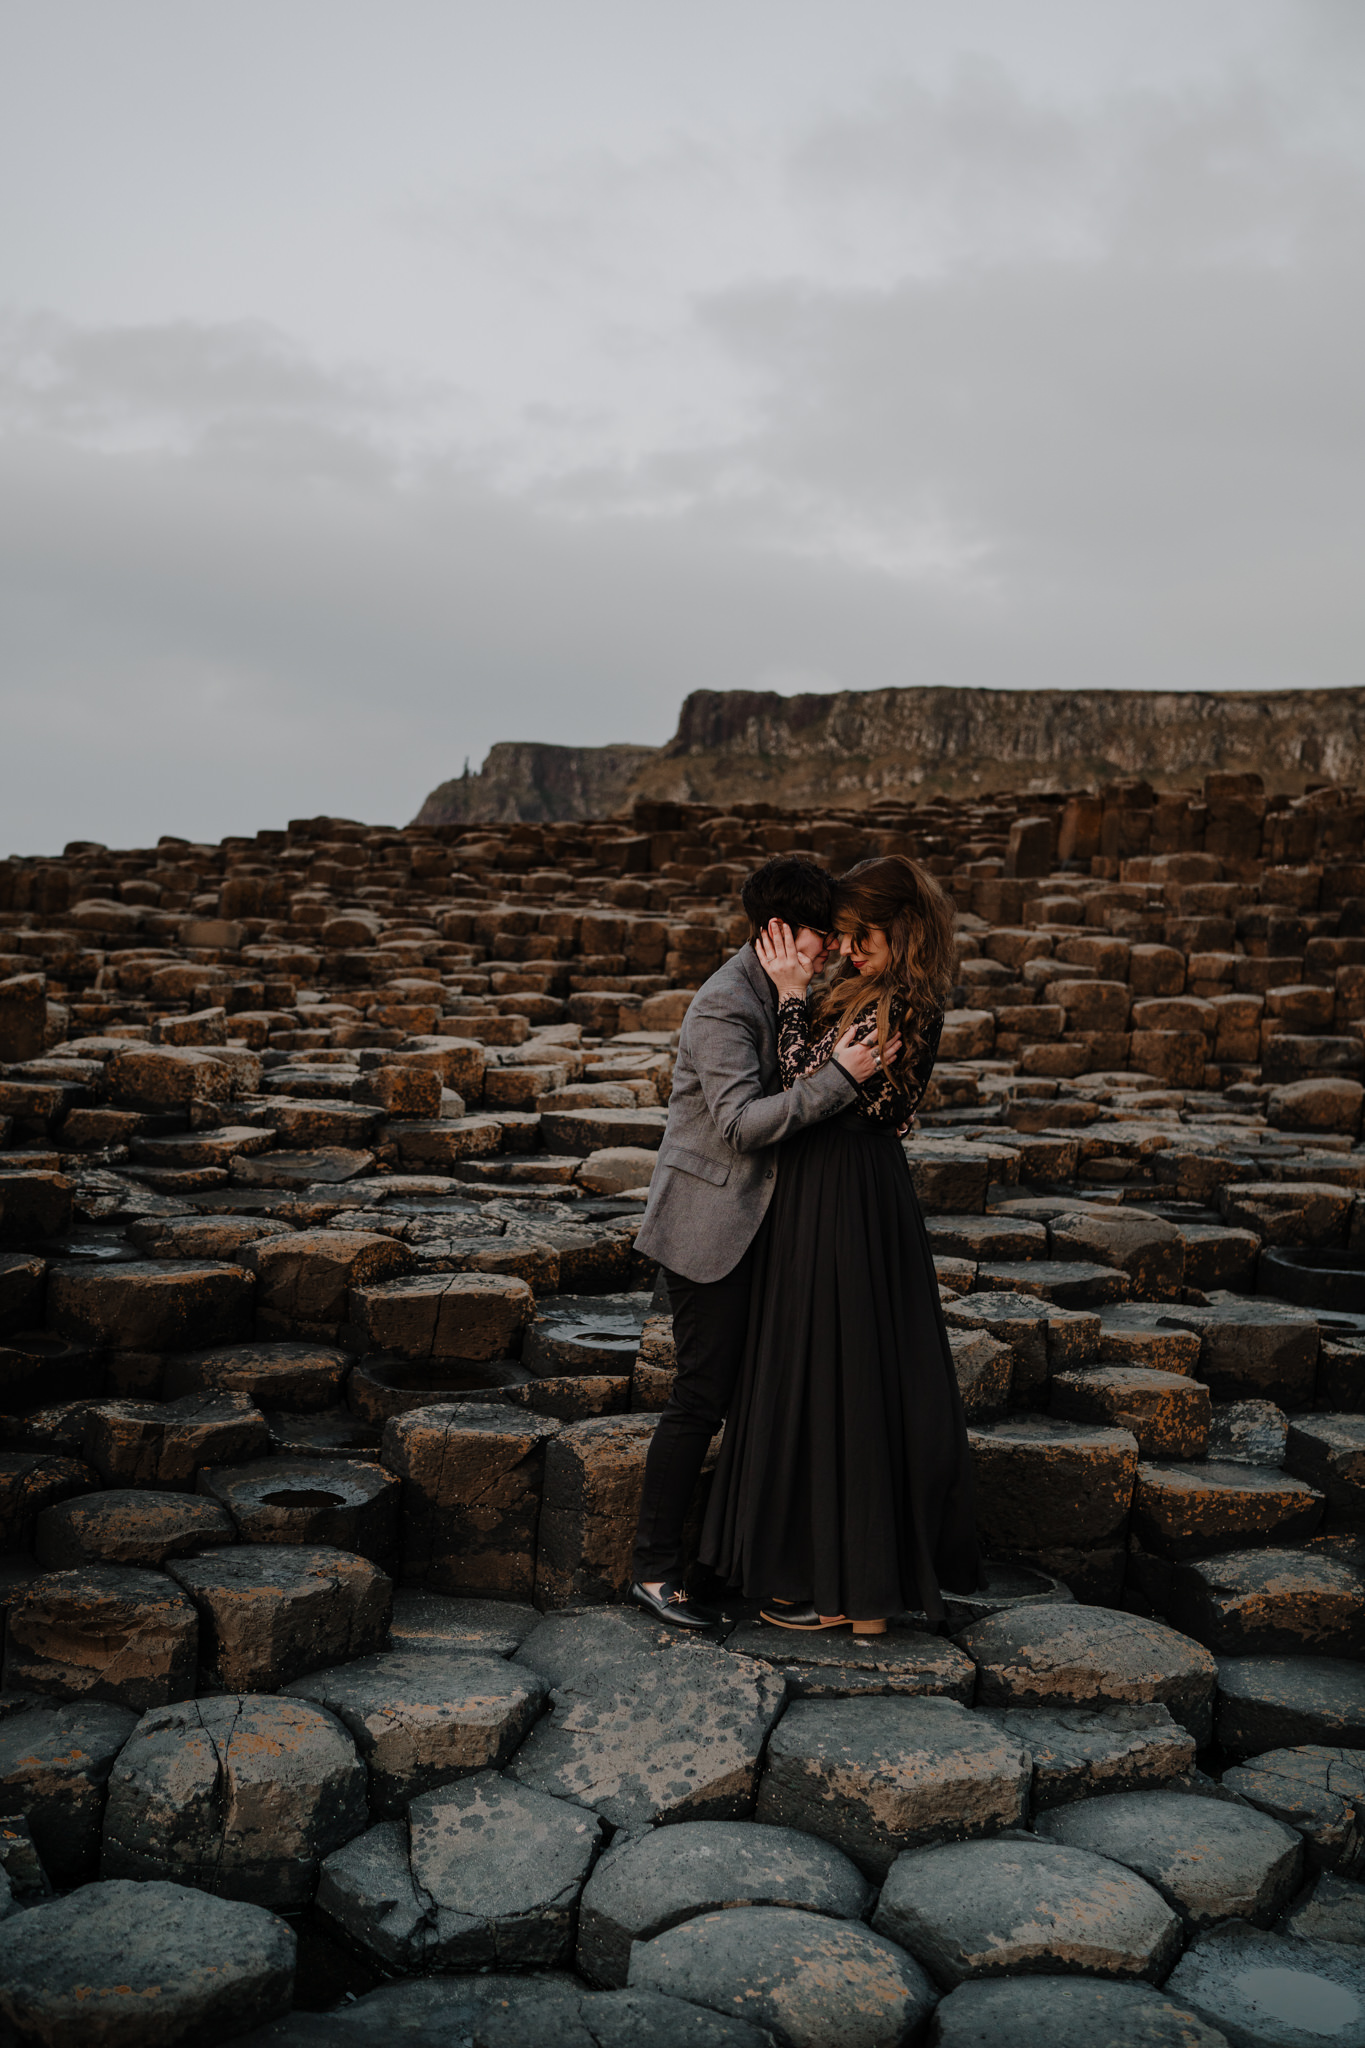 The giants Causeway incredible locations to take photos